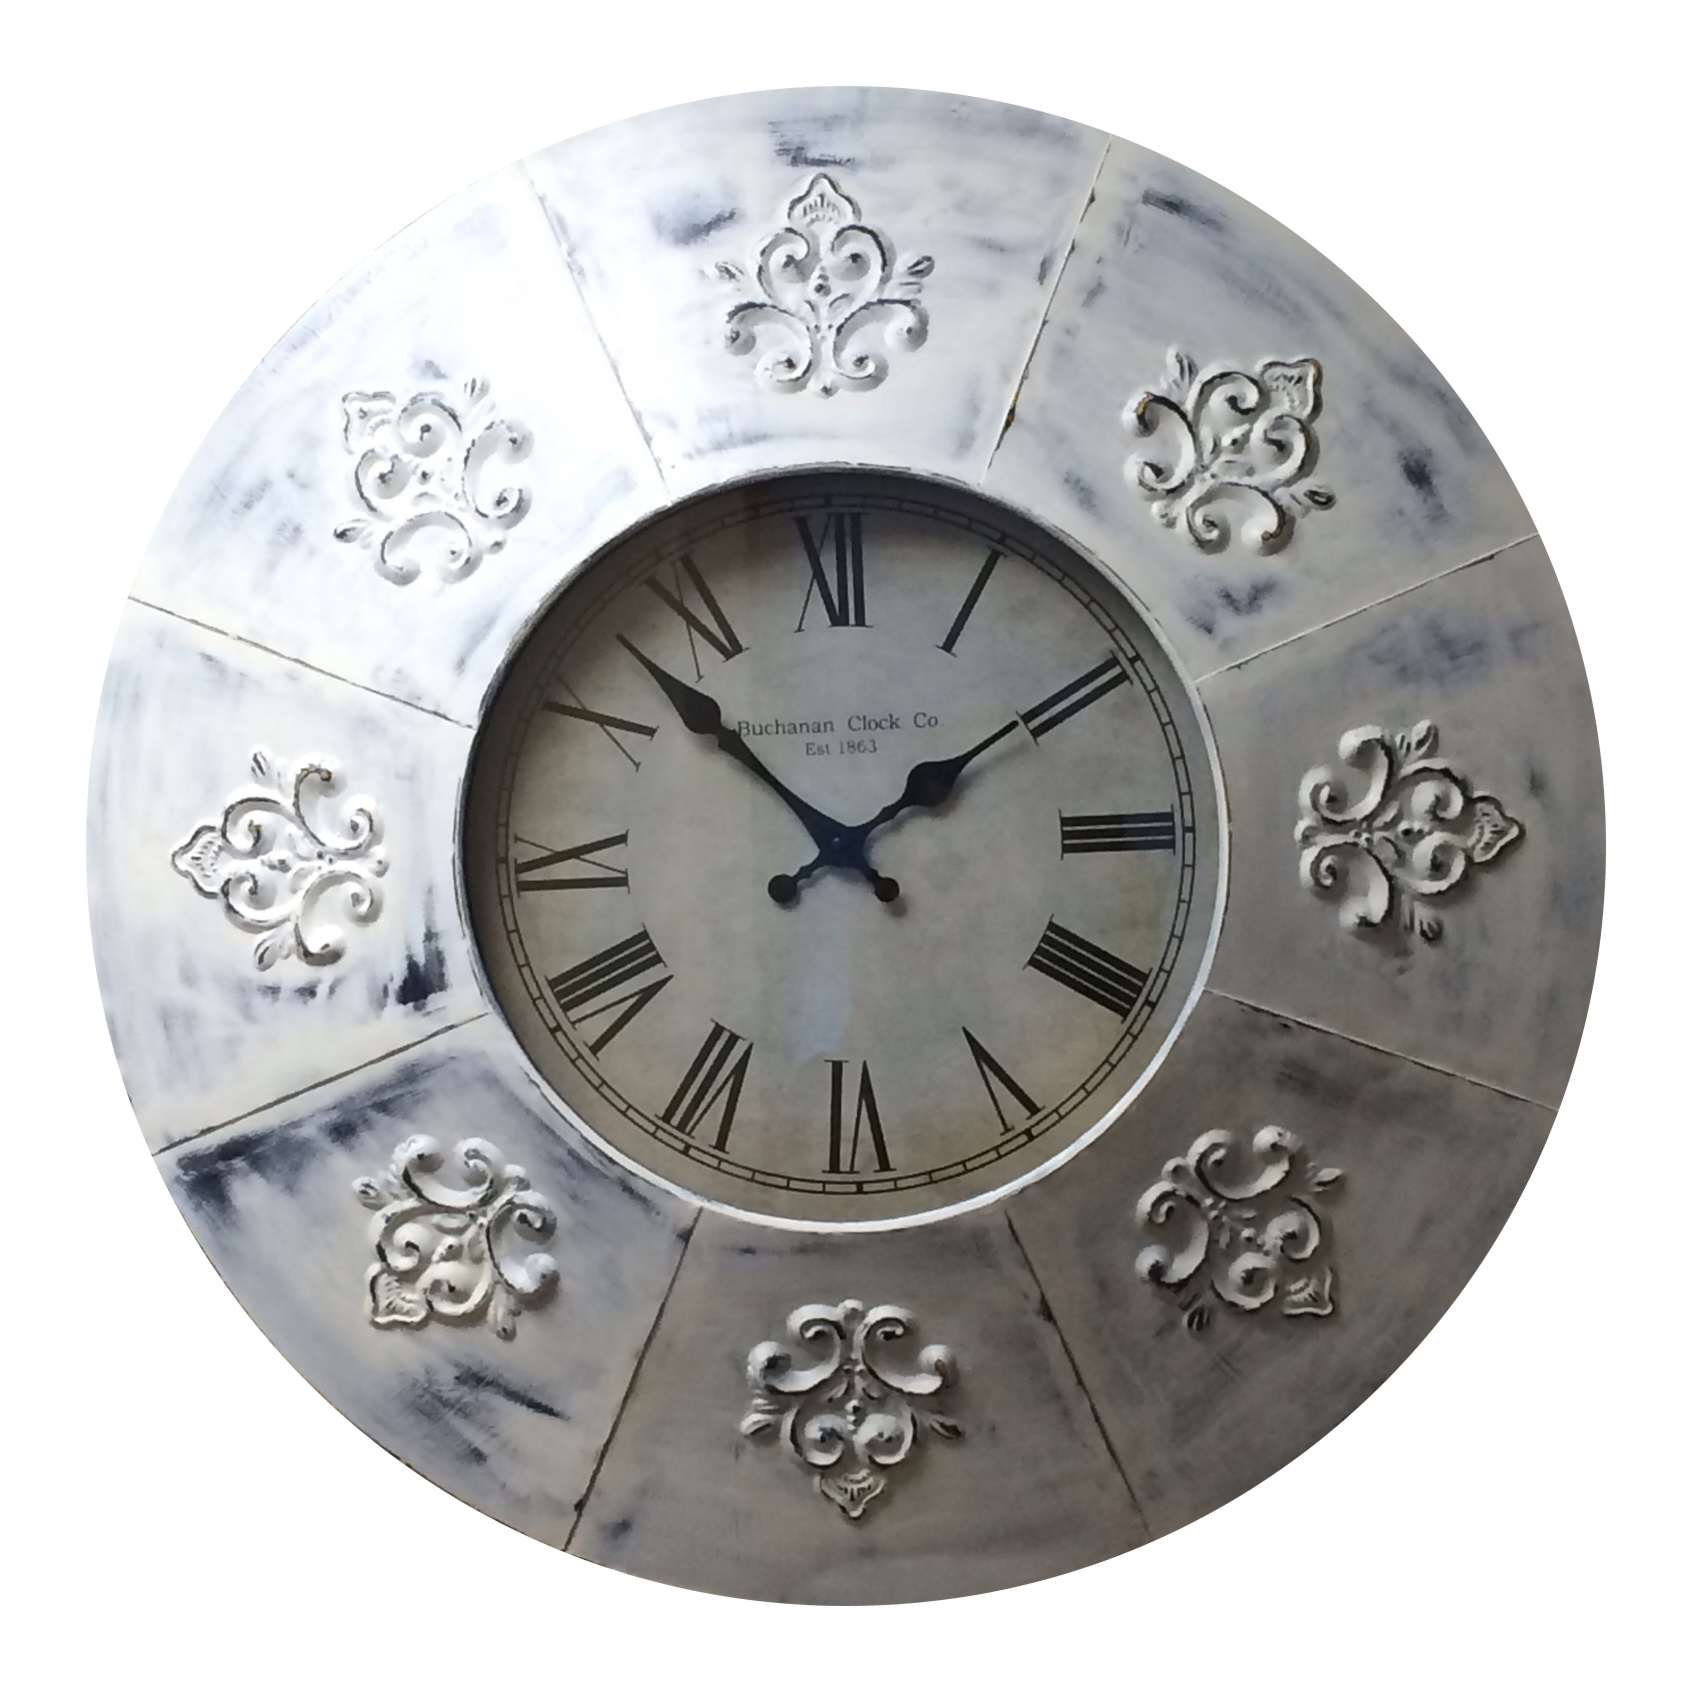 Fleur de lis Wall Clock Distressed Round Metal 23 Inch Battery